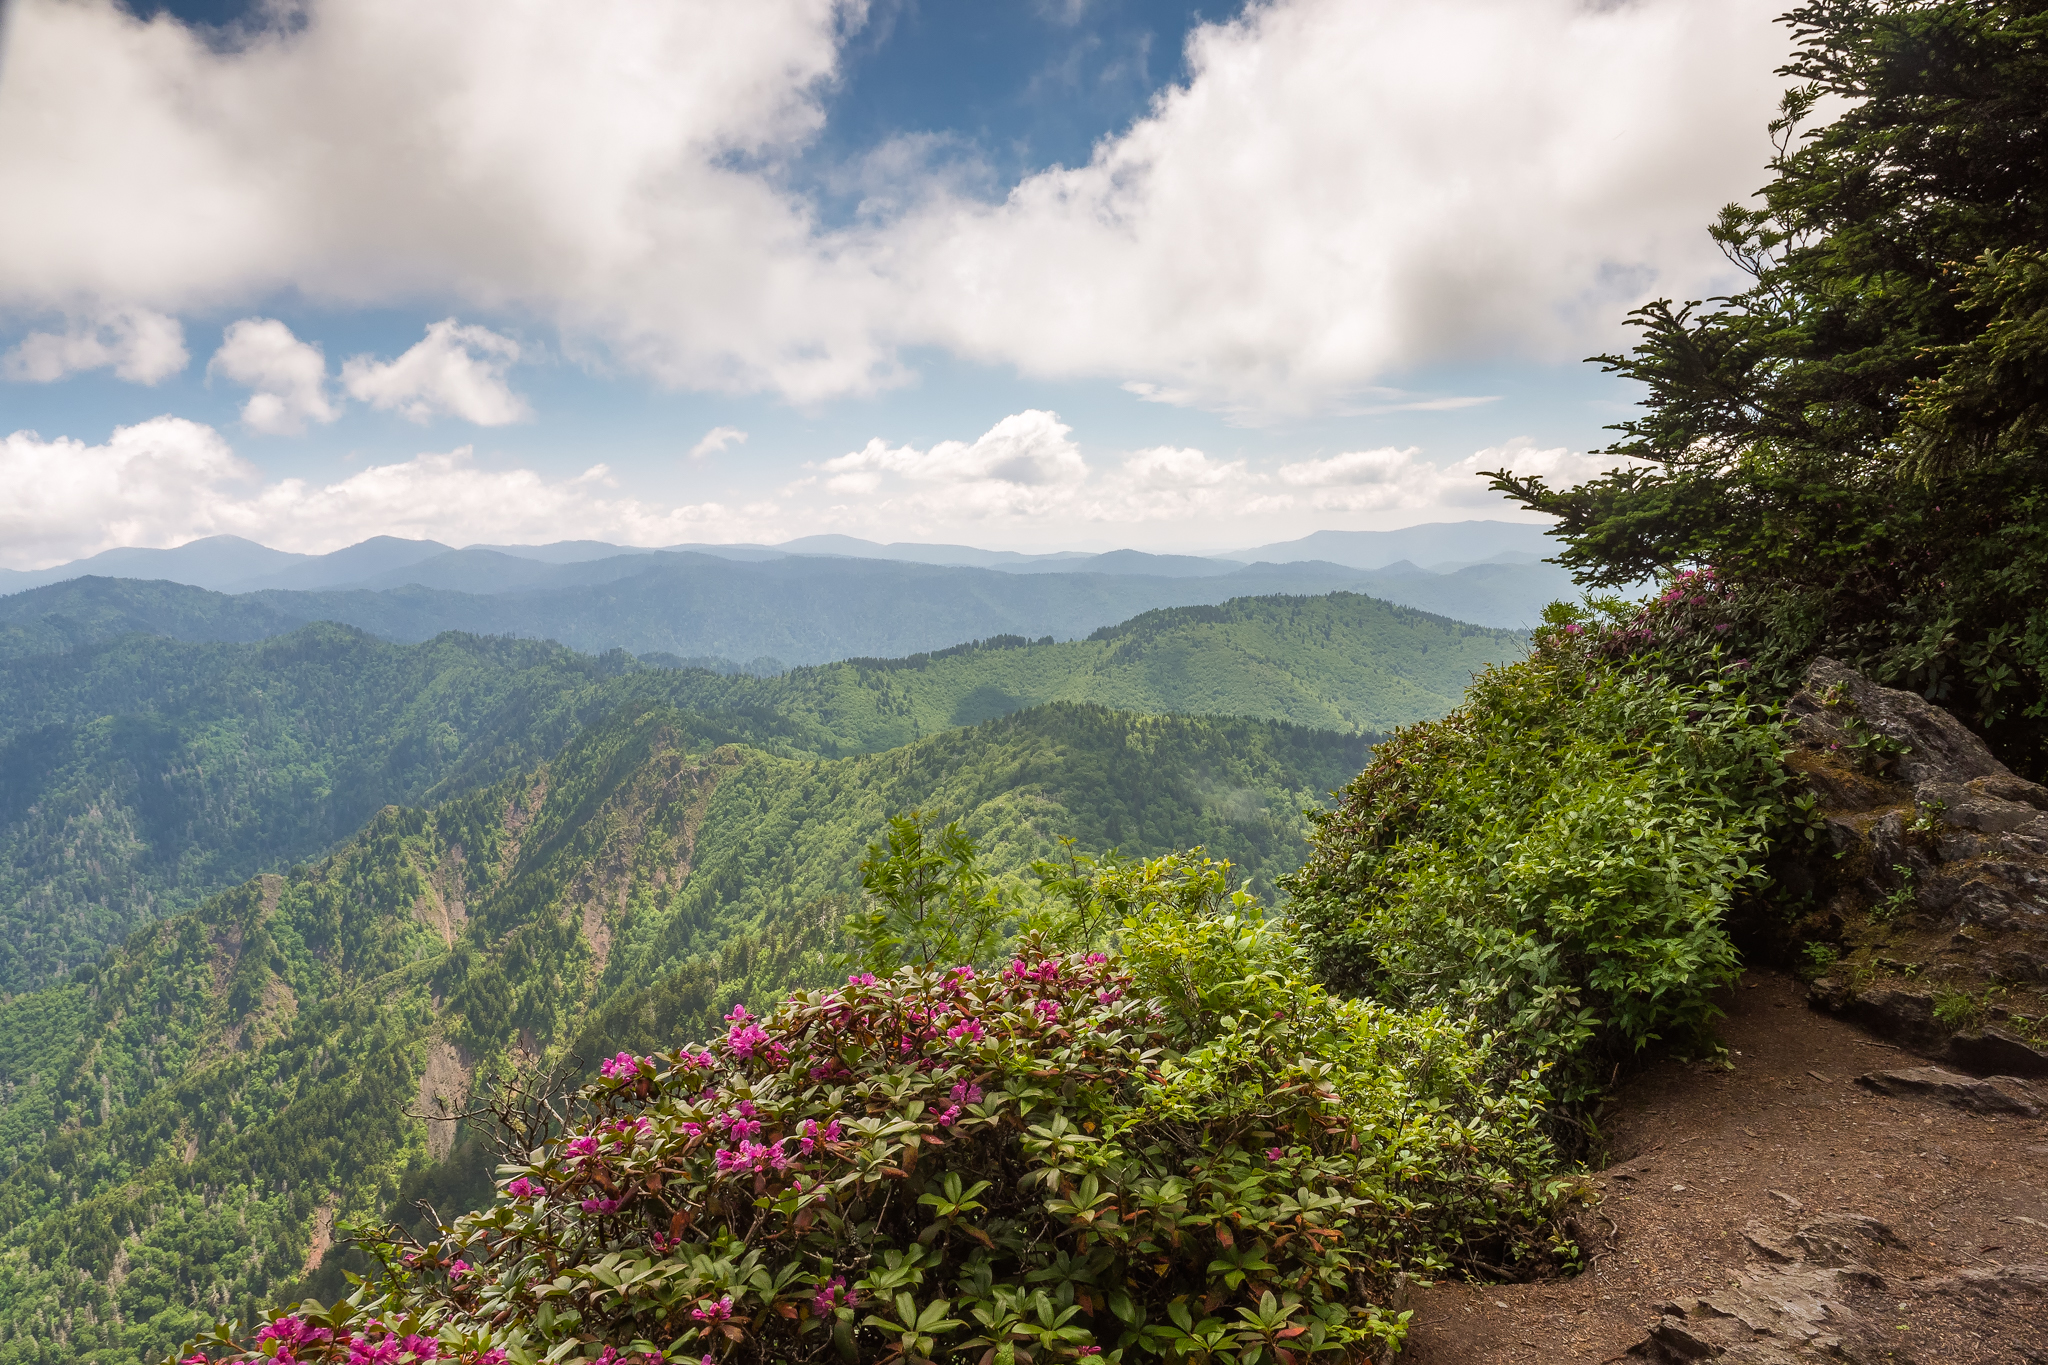 Summer view near the Boulevard Trail showing distant ridges beyond a flowering rhododendron Great Smoky Mountains National Park, Tennessee